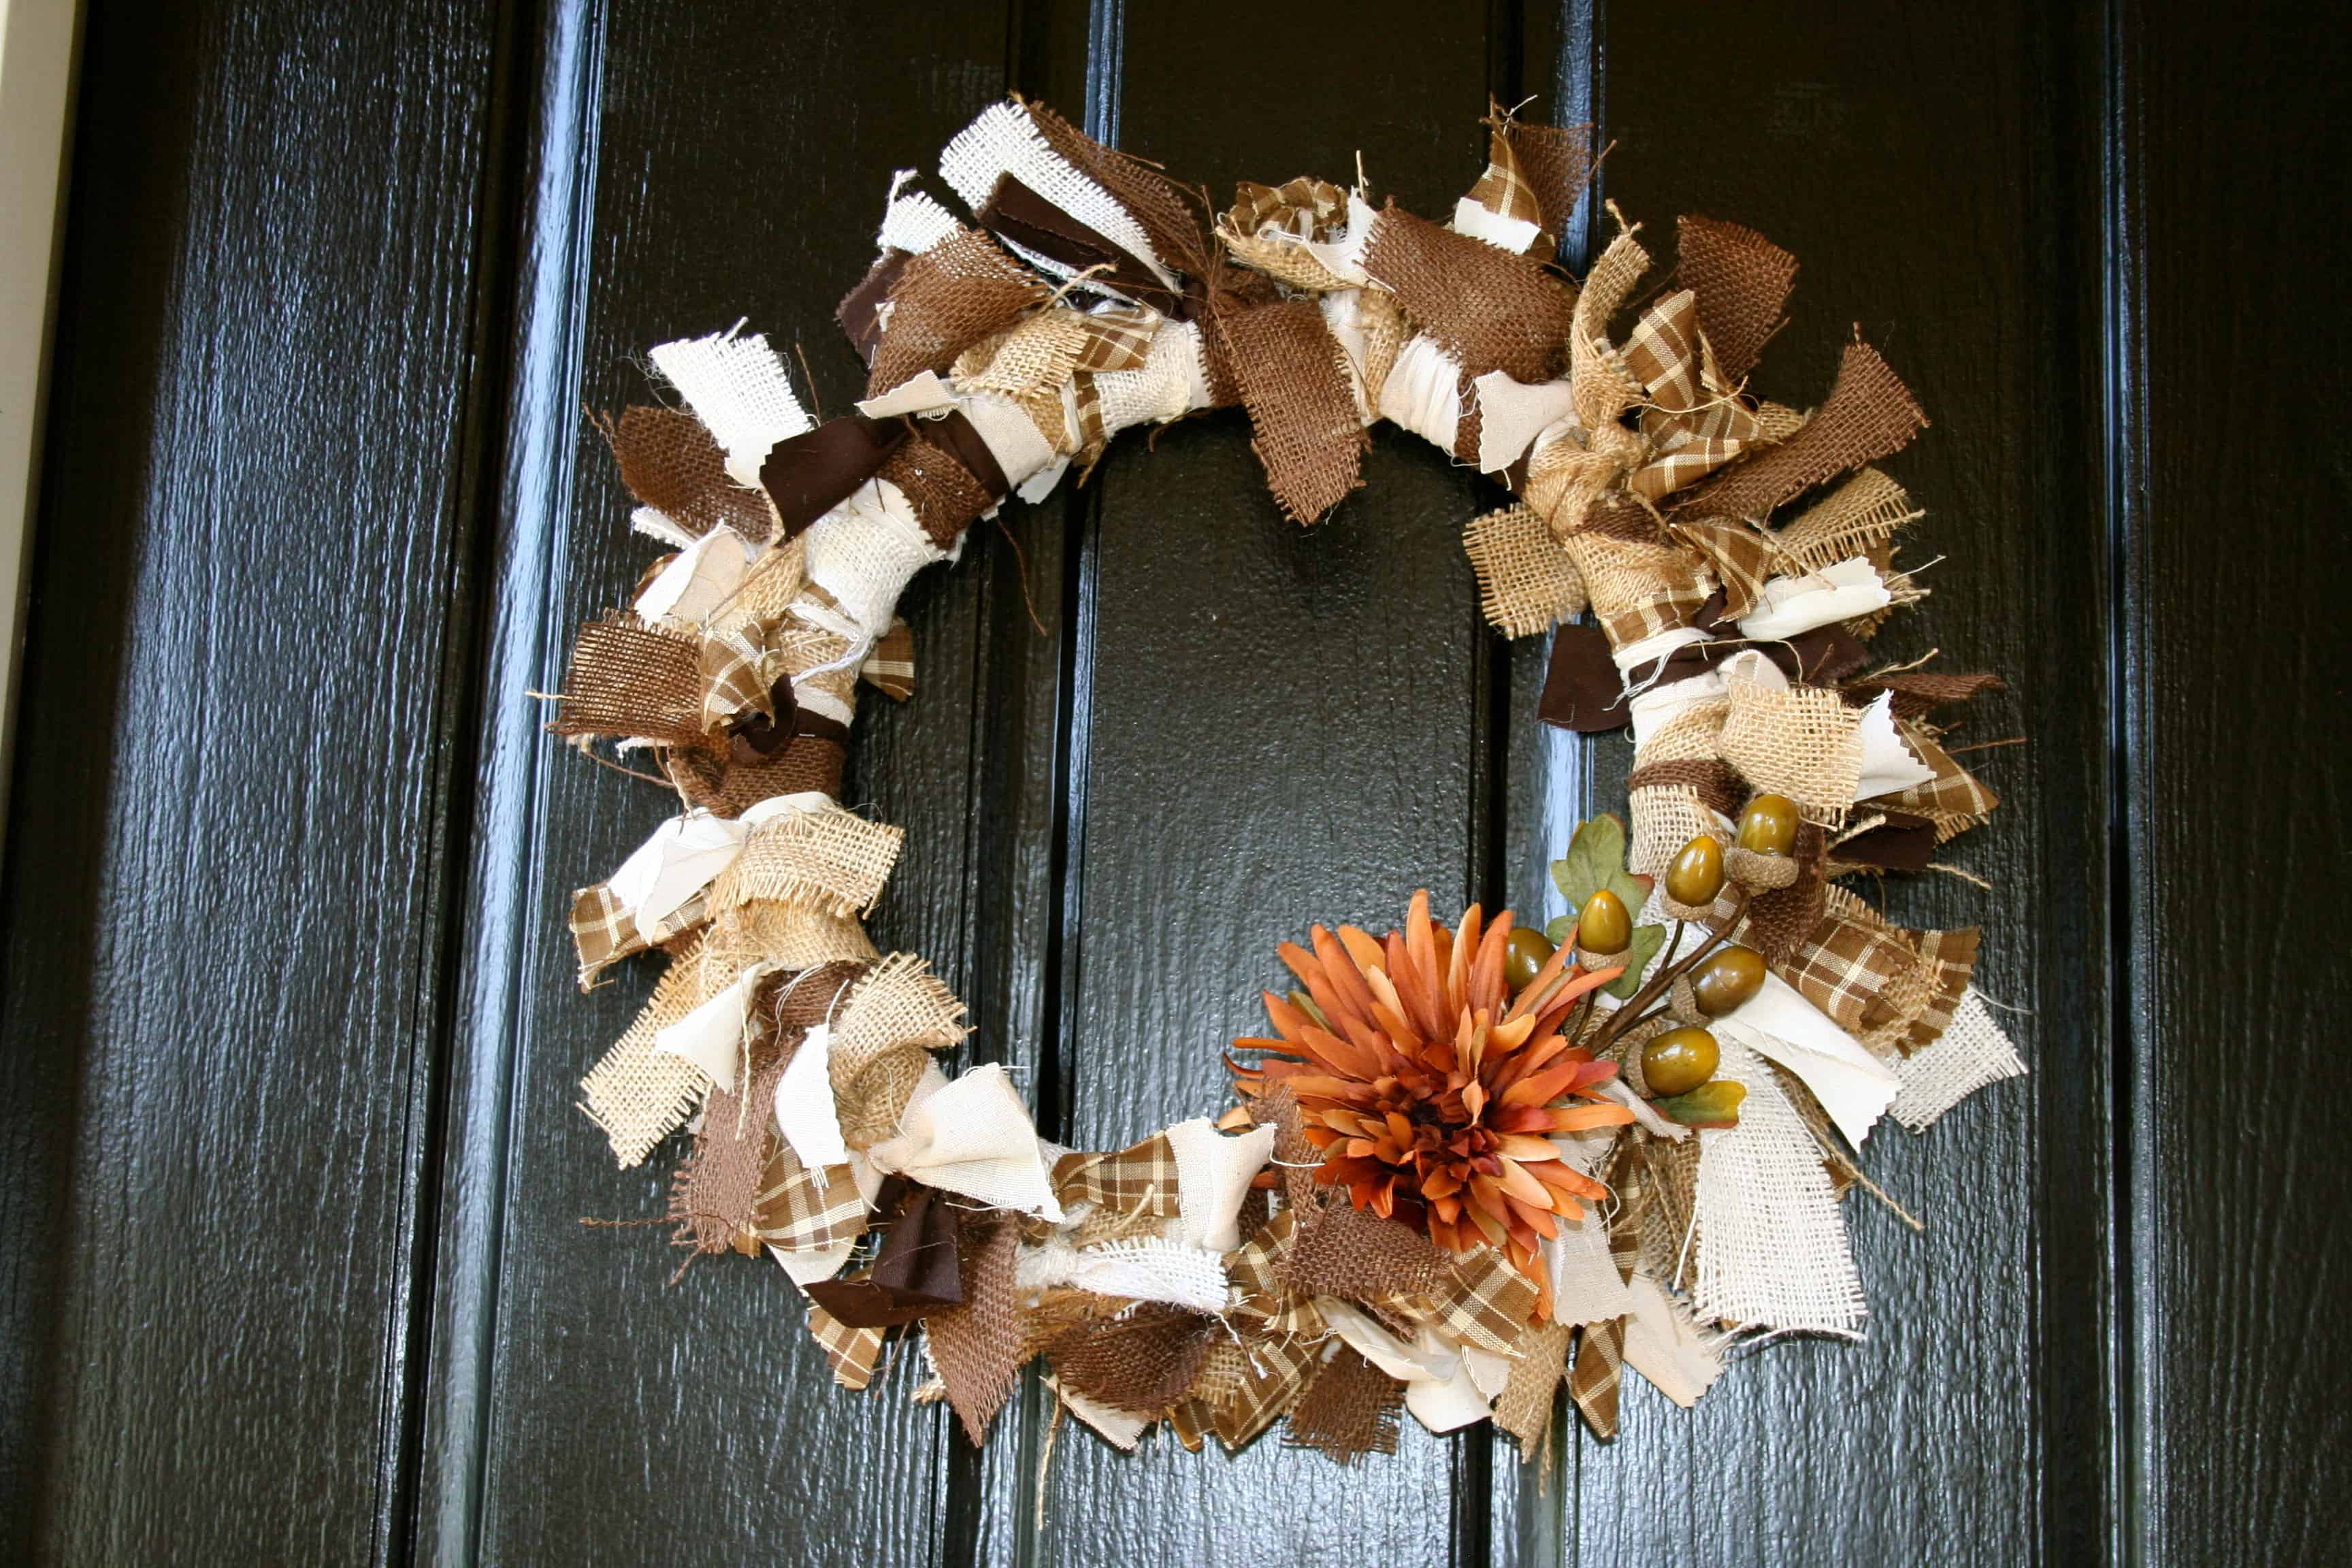 Knotted burlap strips with acorns